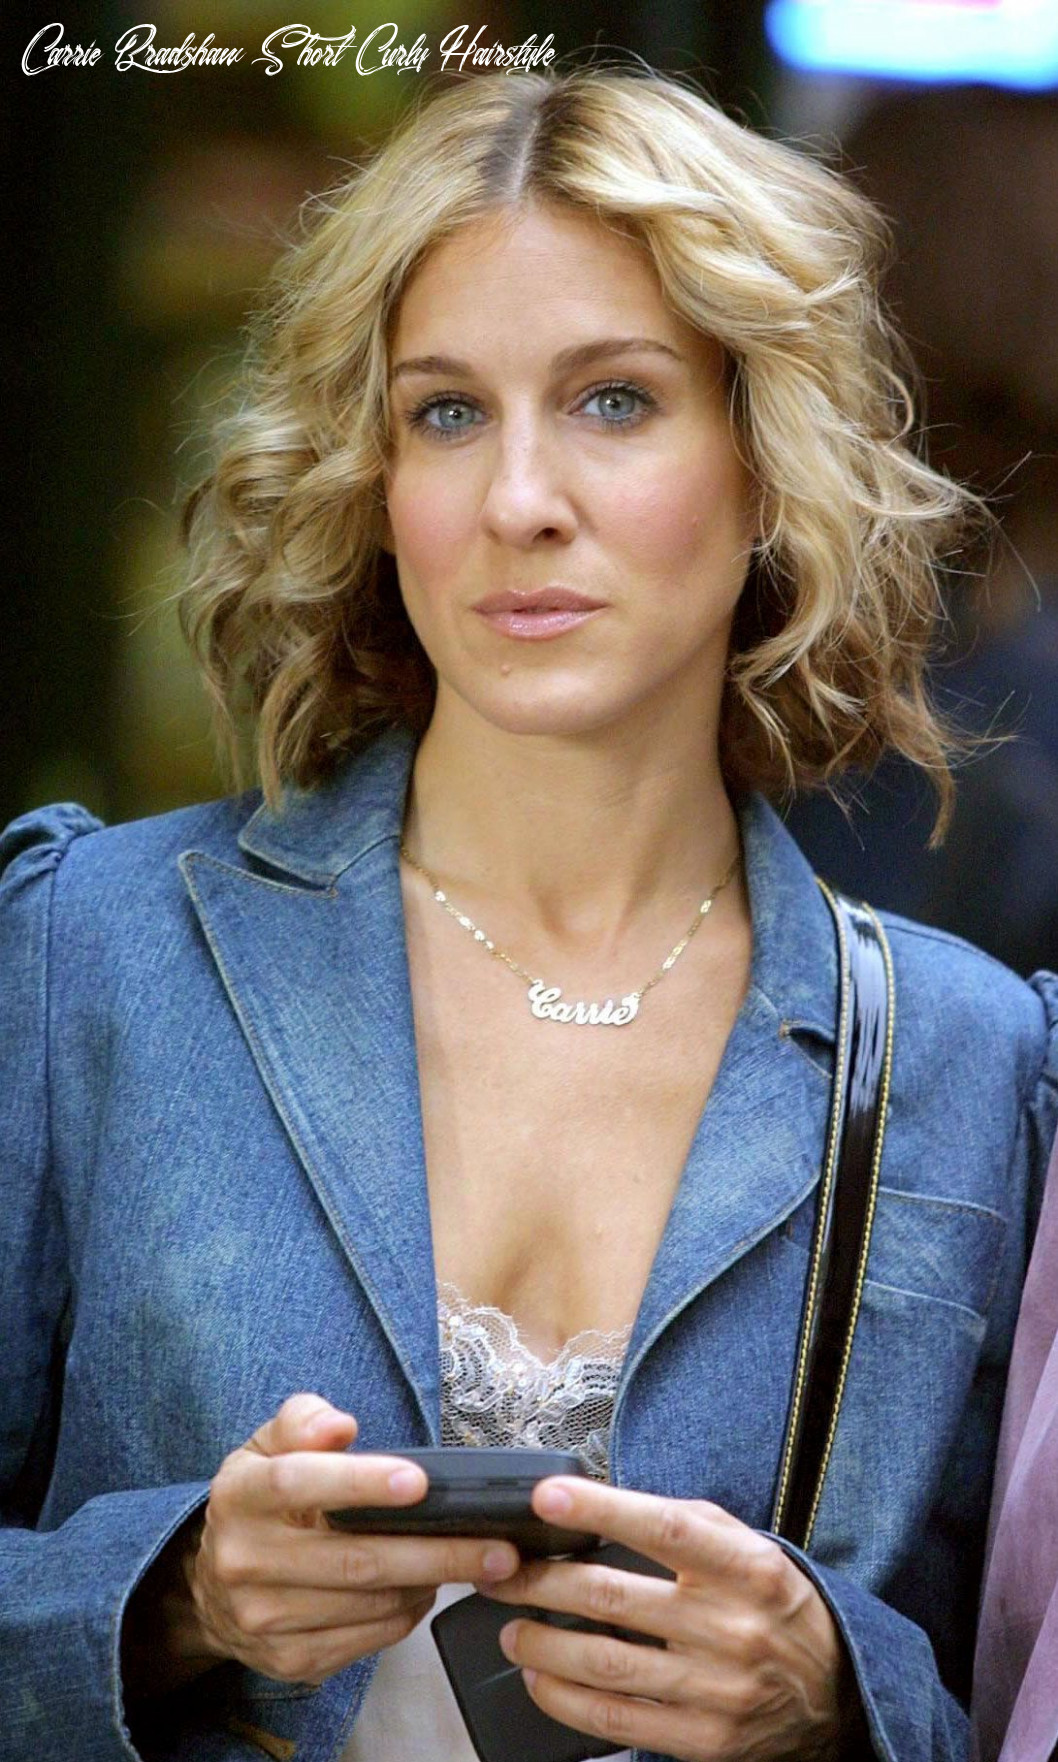 Iconic short hairstyles   carrie bradshaw hair, short hair styles